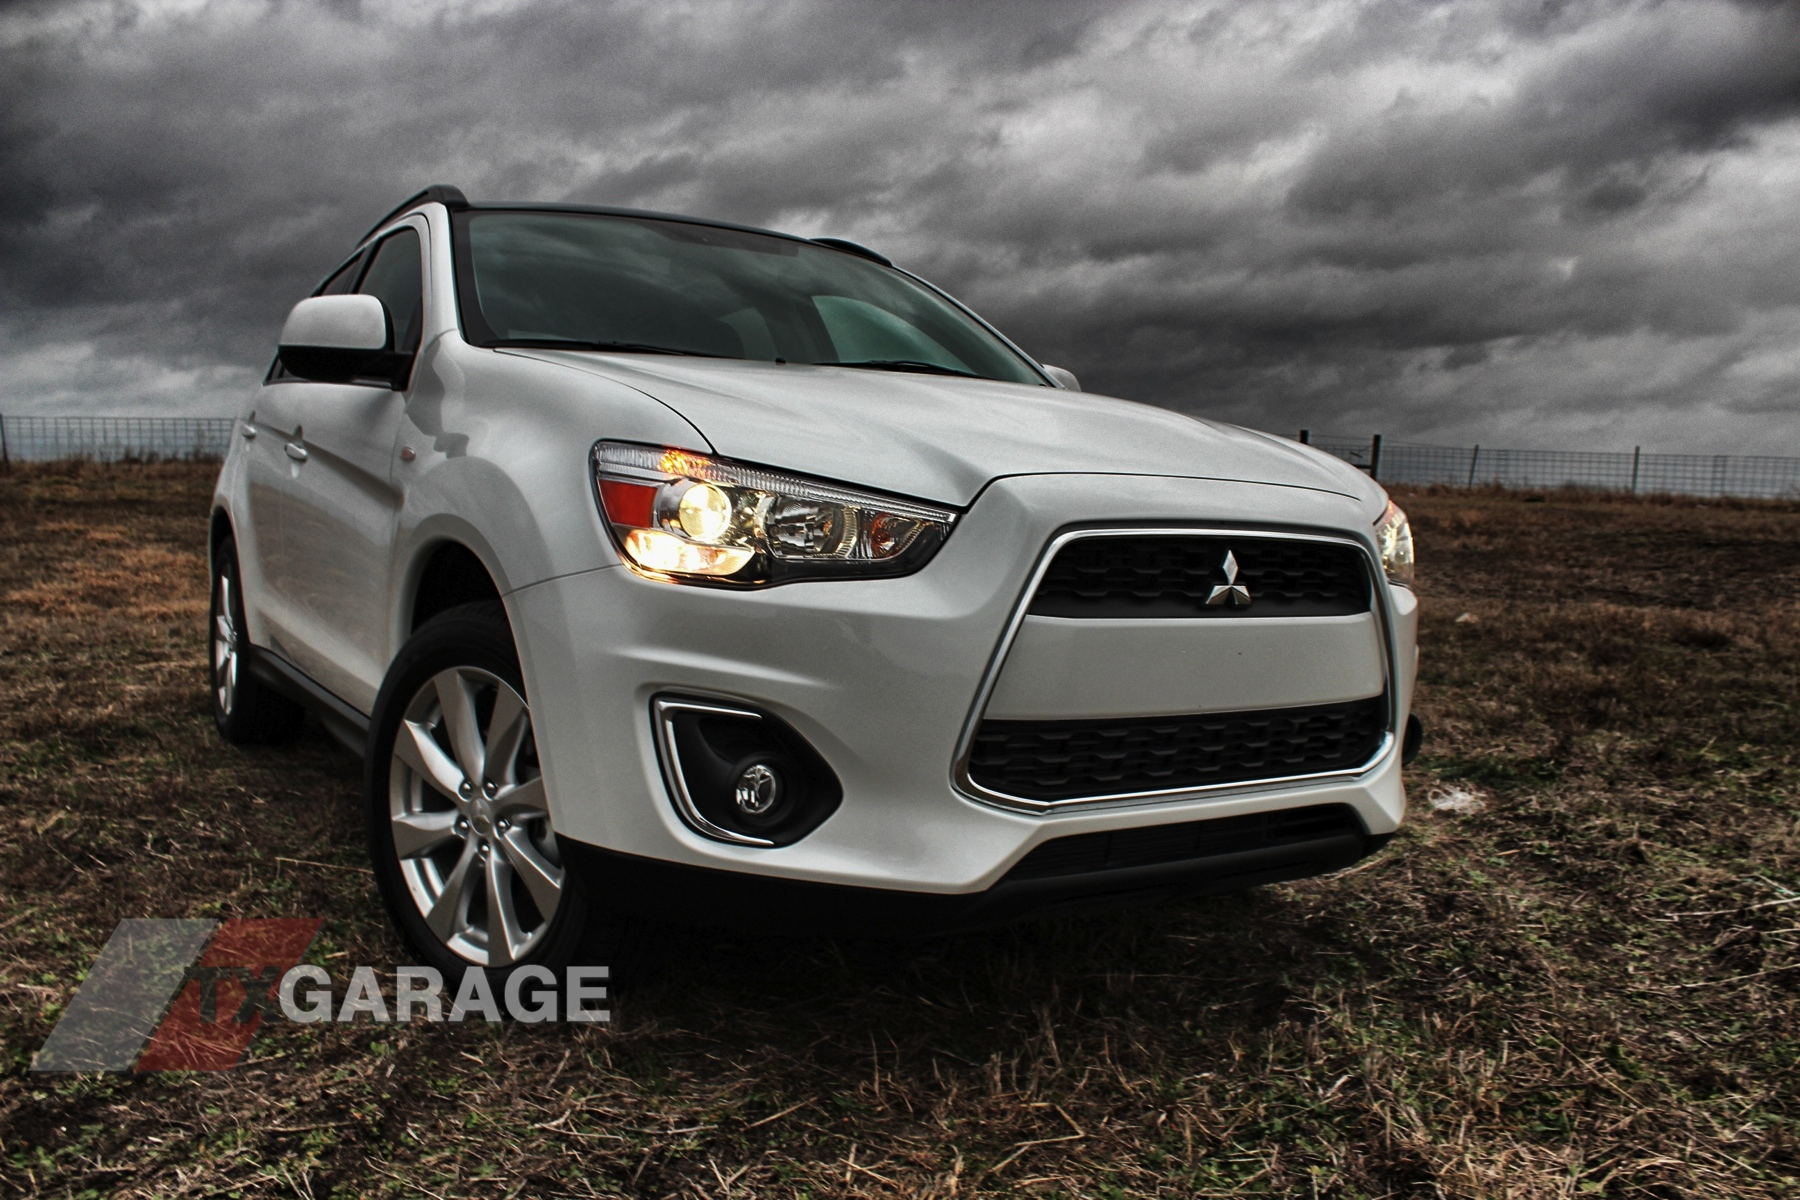 2013 mitsubishi outlander sport 017 txgarage. Black Bedroom Furniture Sets. Home Design Ideas